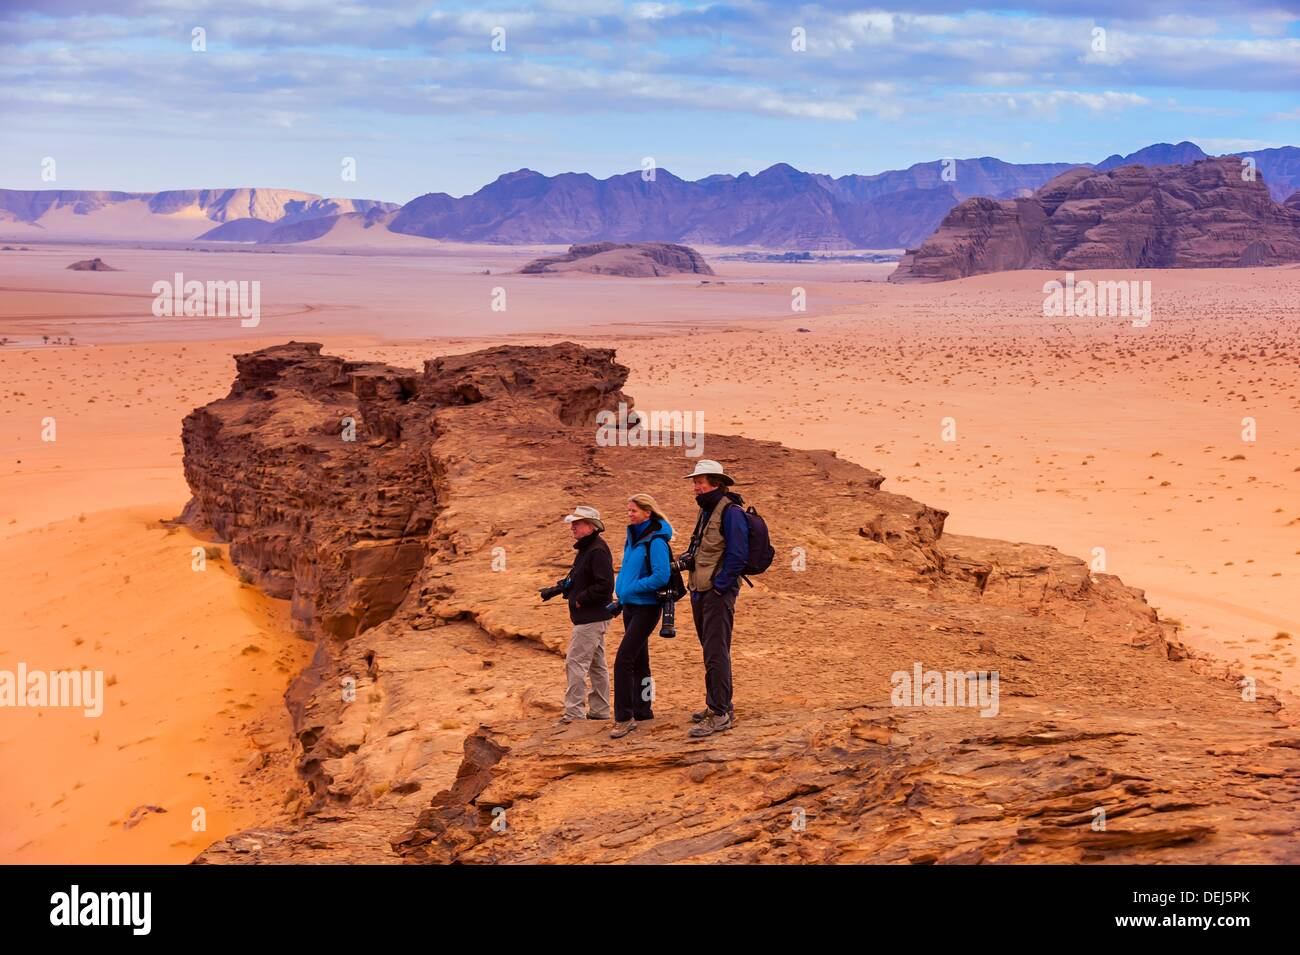 Image of: Dune Travelers Enjoy Panoramic View Of The Arabian Desert At Wadi Rum Jordan Alamy Travelers Enjoy Panoramic View Of The Arabian Desert At Wadi Rum